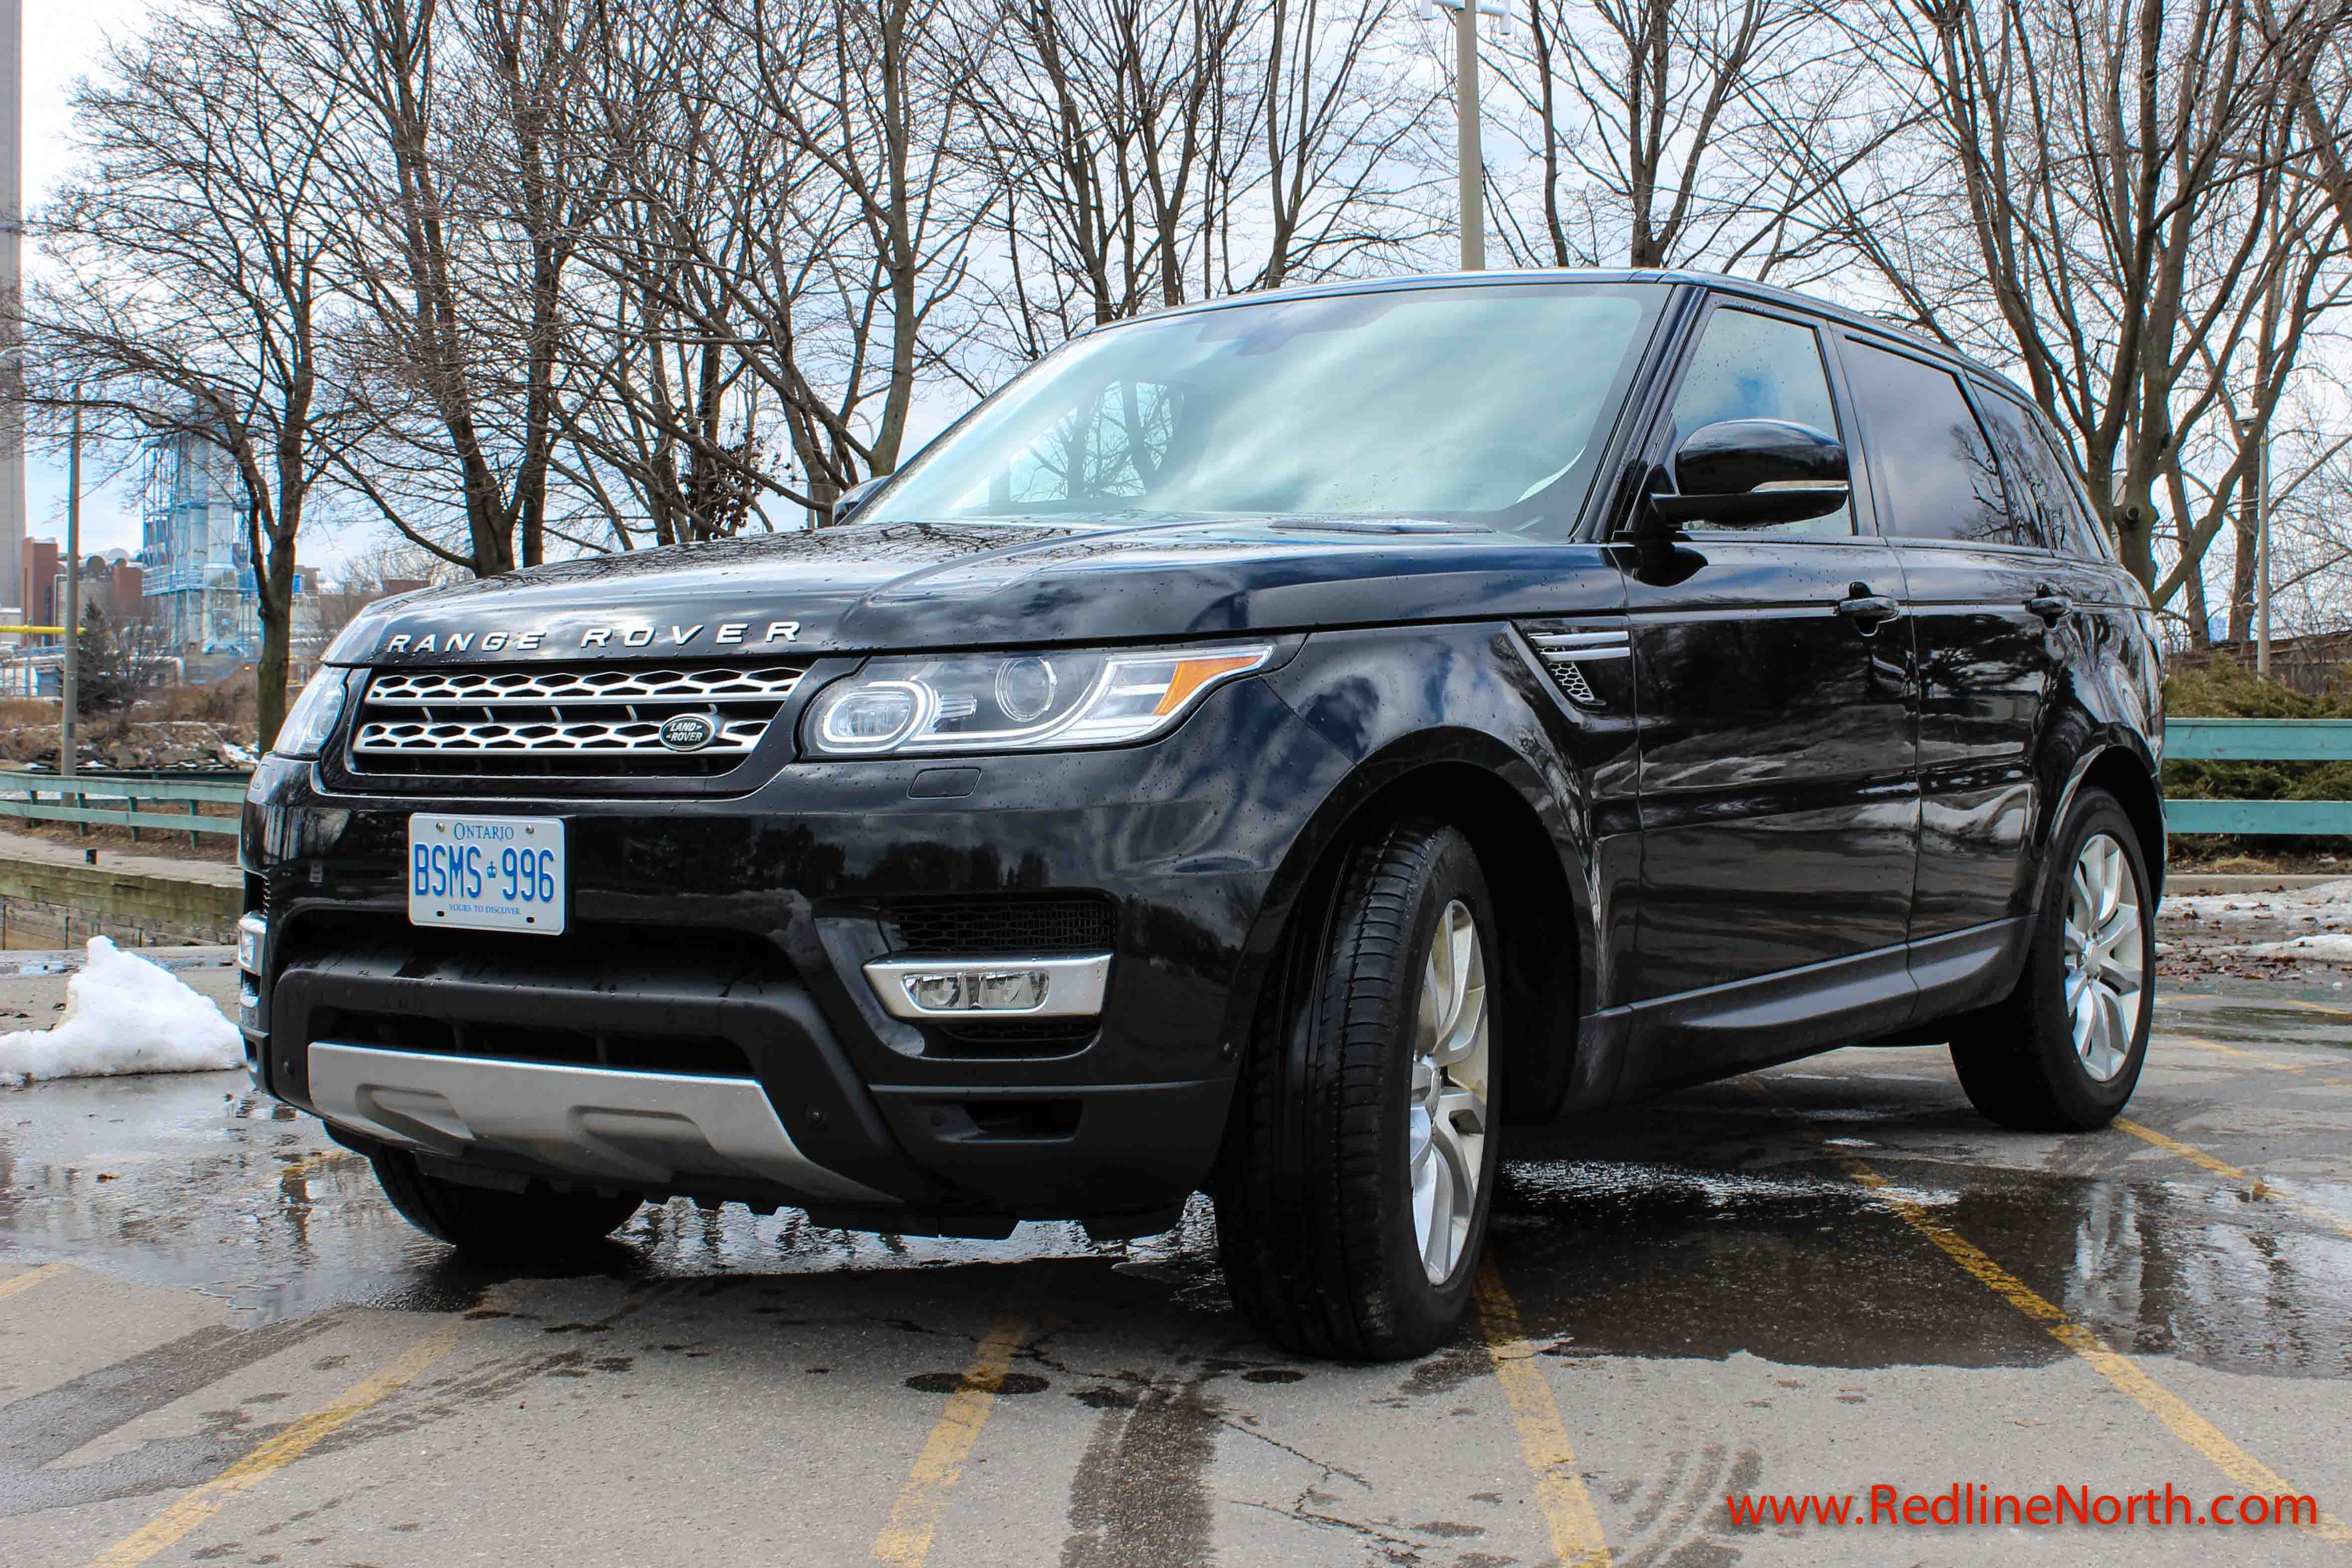 Range Rover Sport HSE vs Range Rover Supercharged